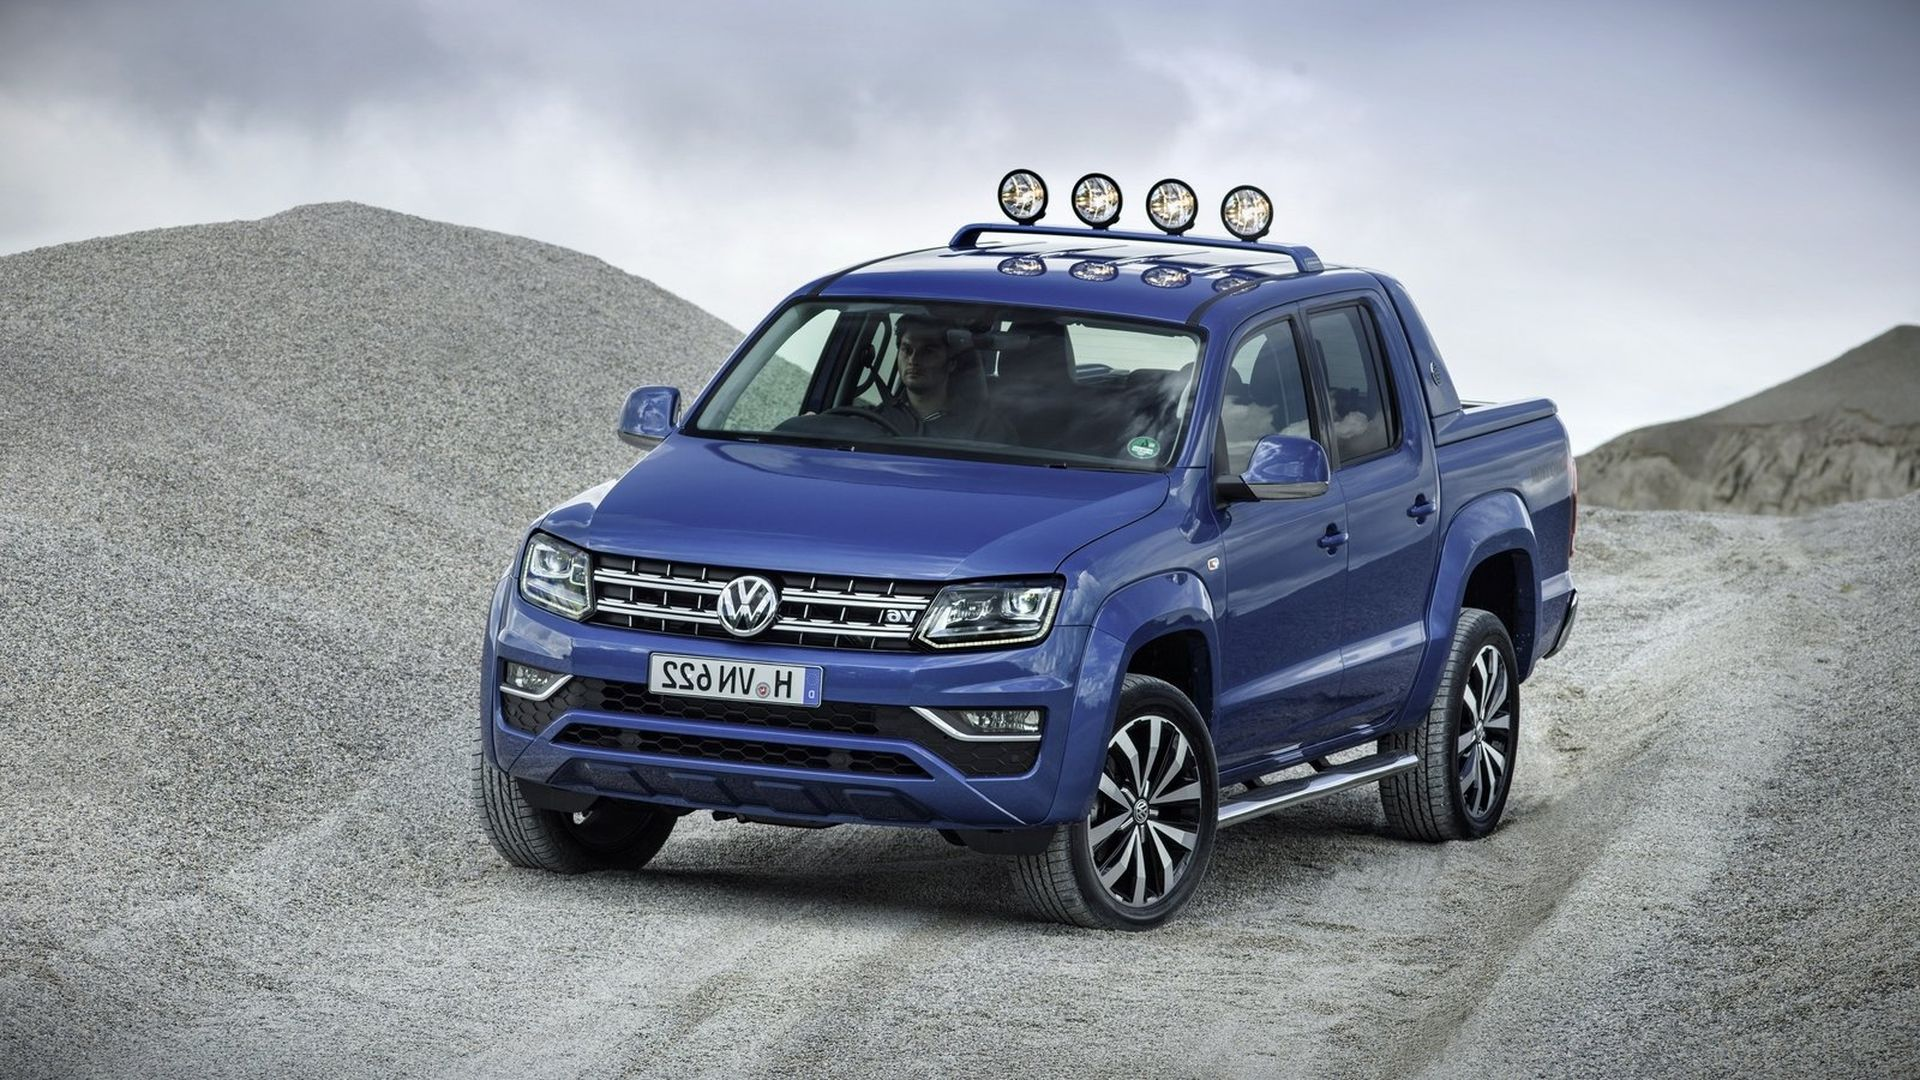 2018 Volkswagen Amarok modified for sale